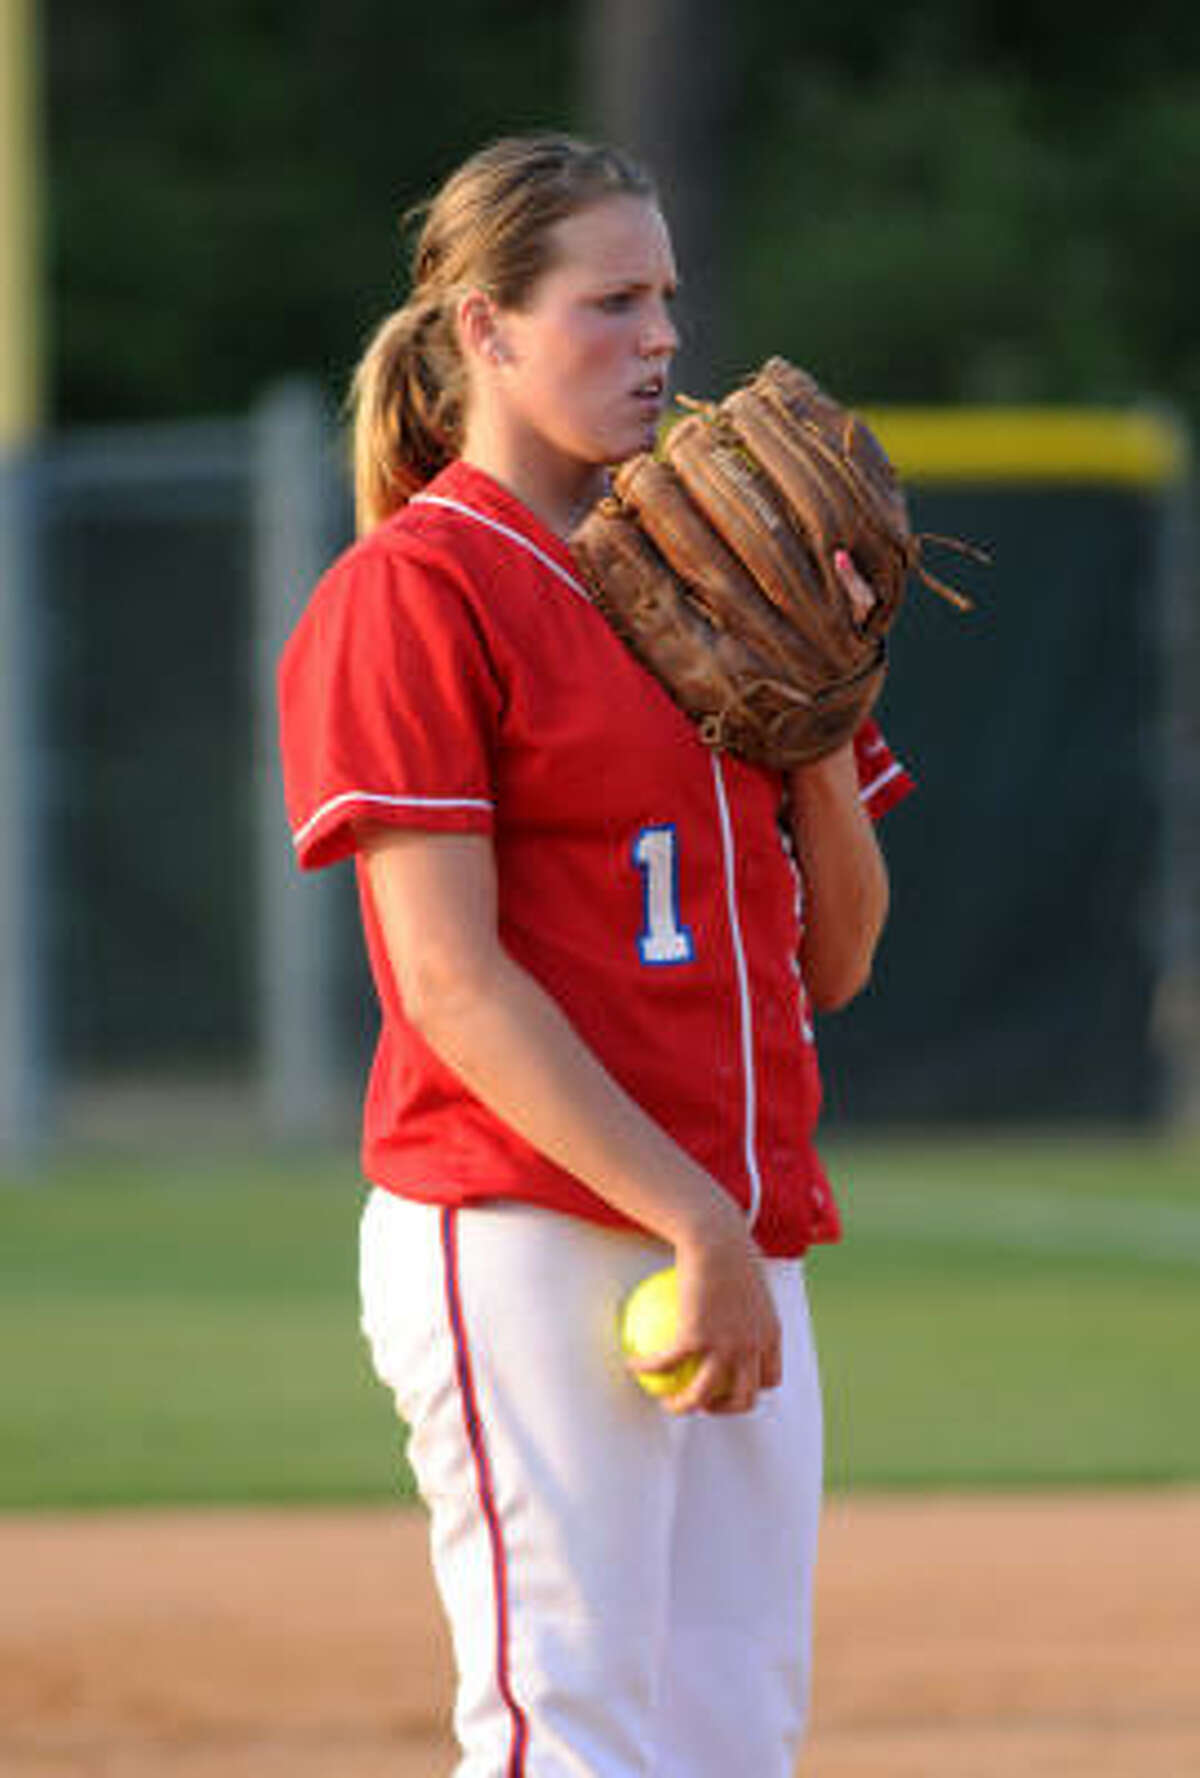 Shelby Lancaster, 15-5 this season with 141 strikeouts, has been starting for Tomball since her freshman year.